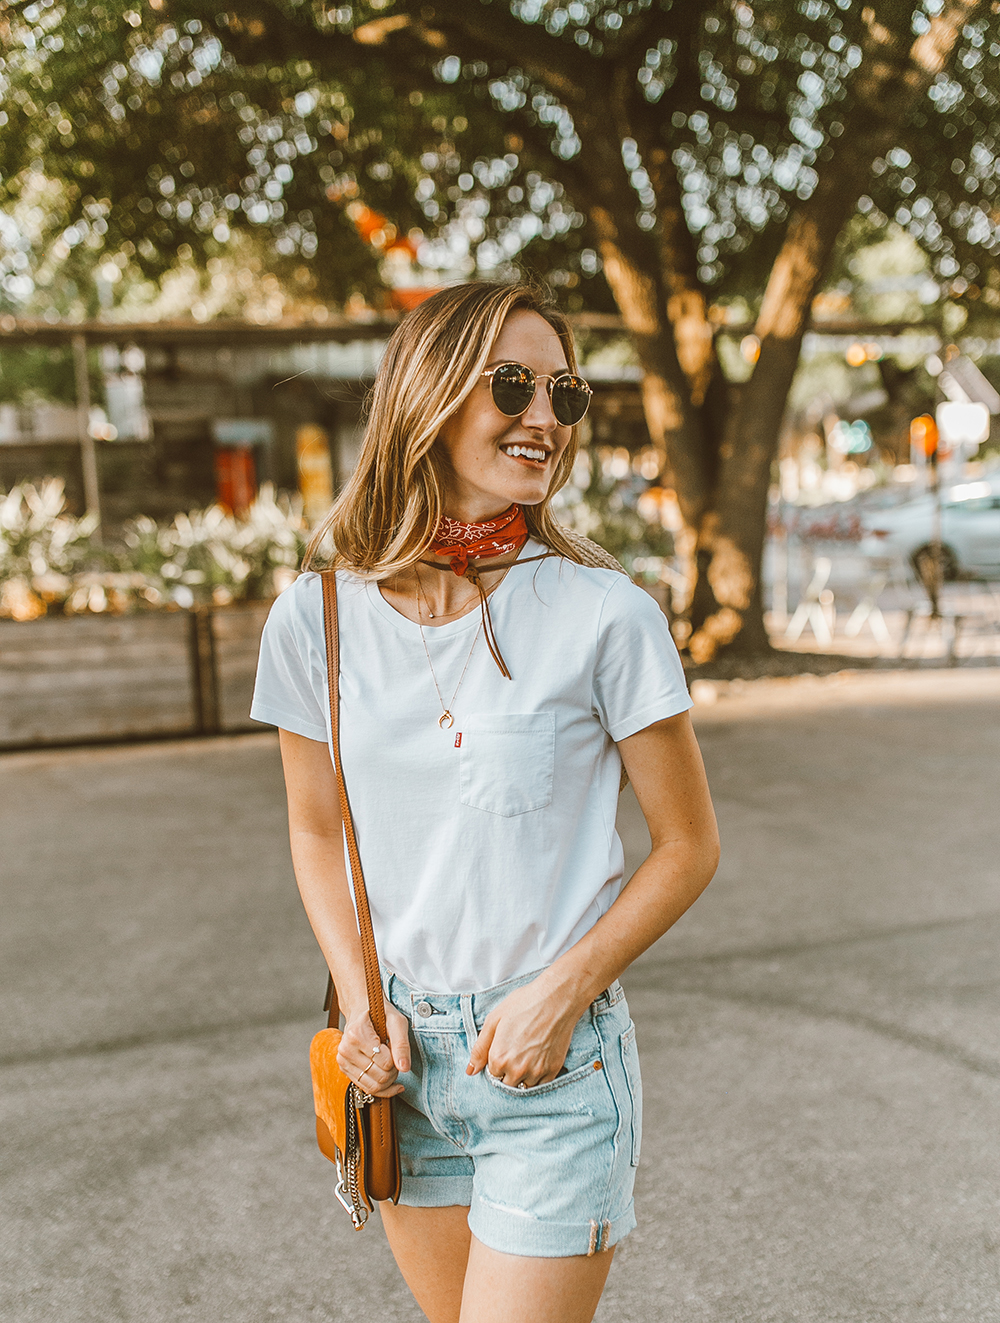 livvyland-blog-olivia-watson-austin-texas-fashion-style-blogger-what-to-wear-levis-501-denim-shorts-festival-outfit-idea-1